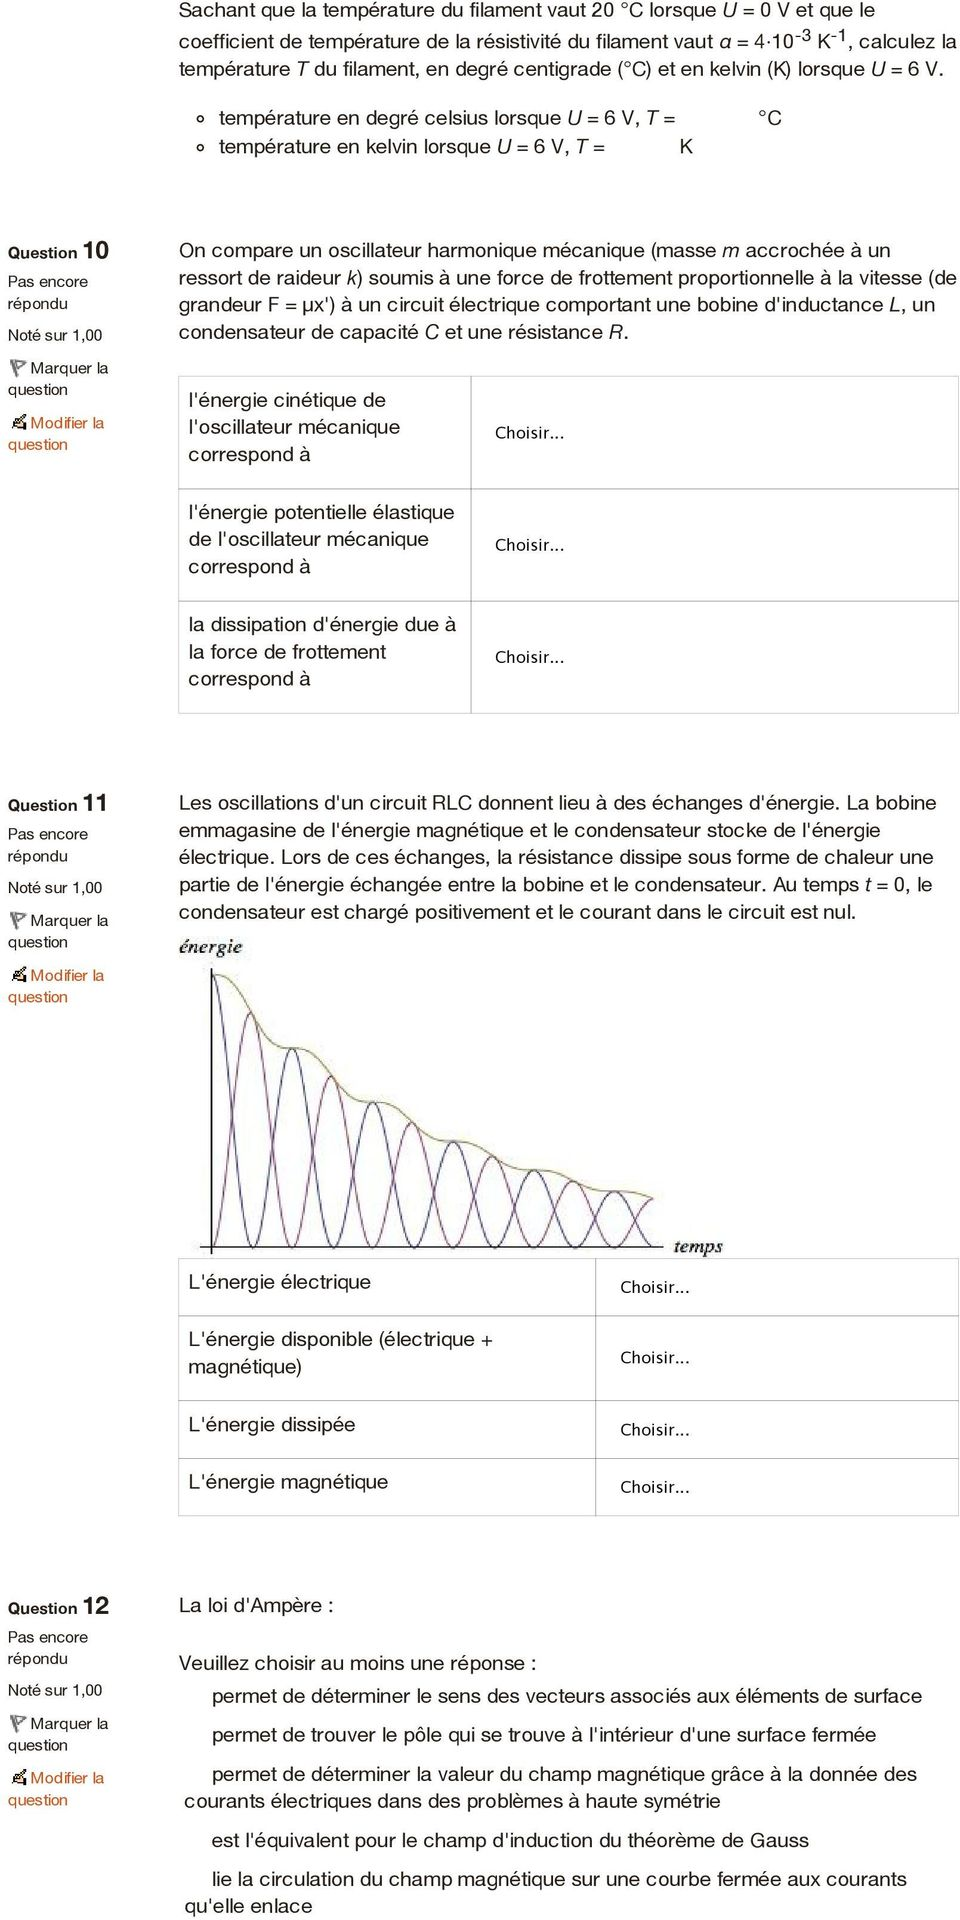 température en degré celsius lorsque U = 6 V, T = C température en kelvin lorsque U = 6 V, T = K Question 10 On compare un oscillateur harmonique mécanique (masse m accrochée à un ressort de raideur